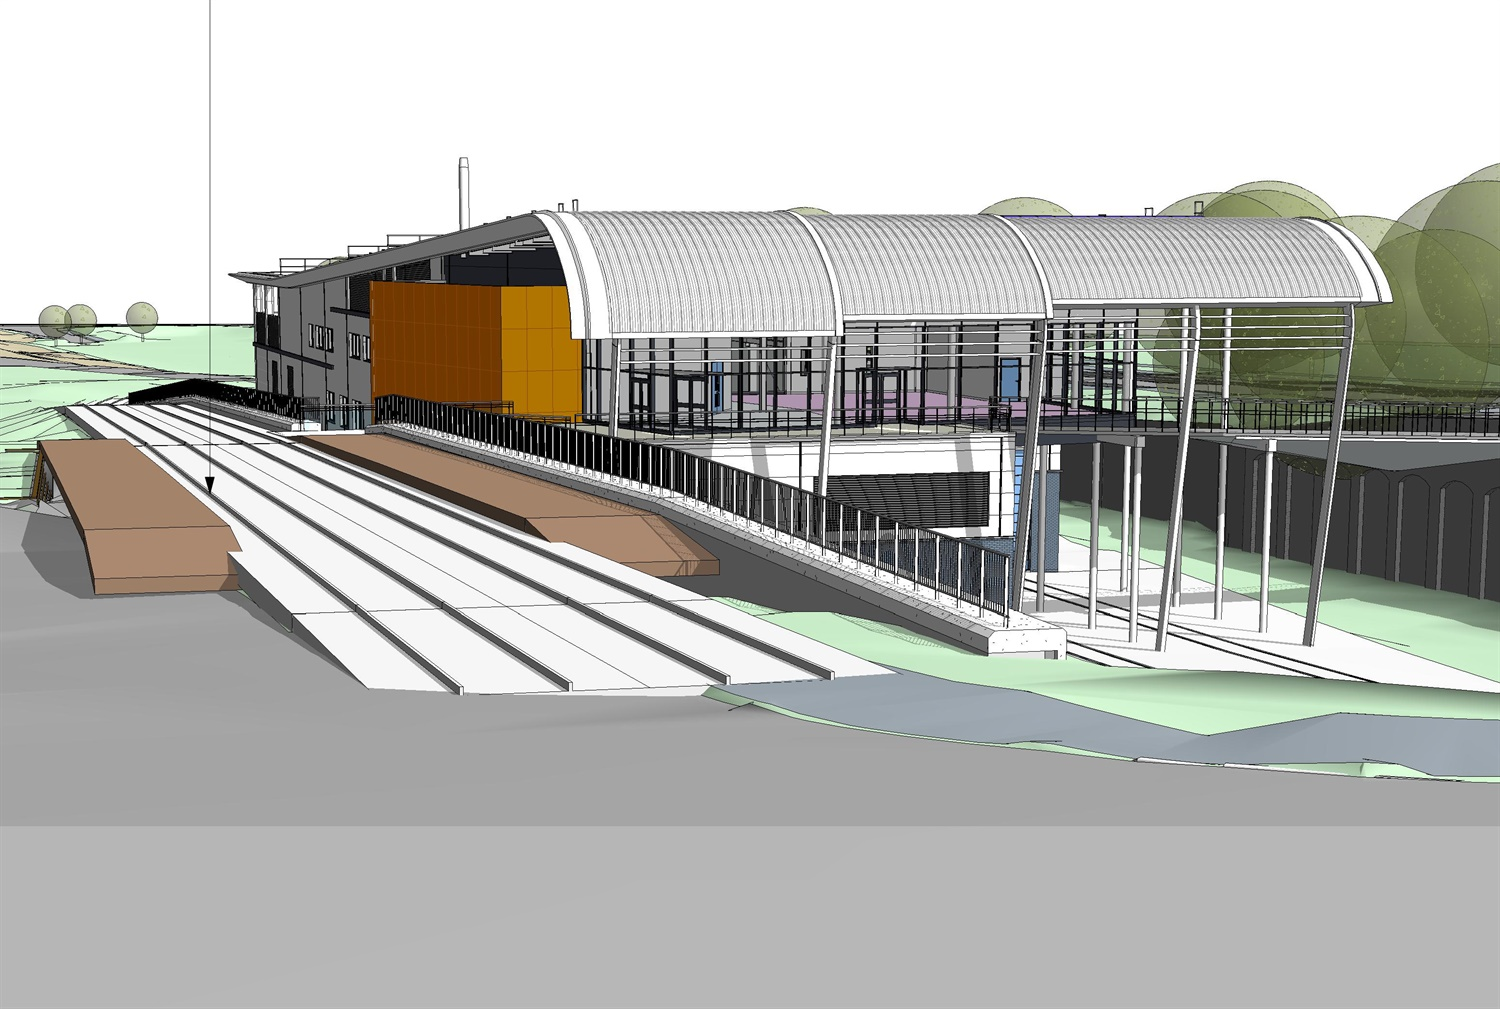 Dudley council looking to develop £25m 'very light rail' innovation hub